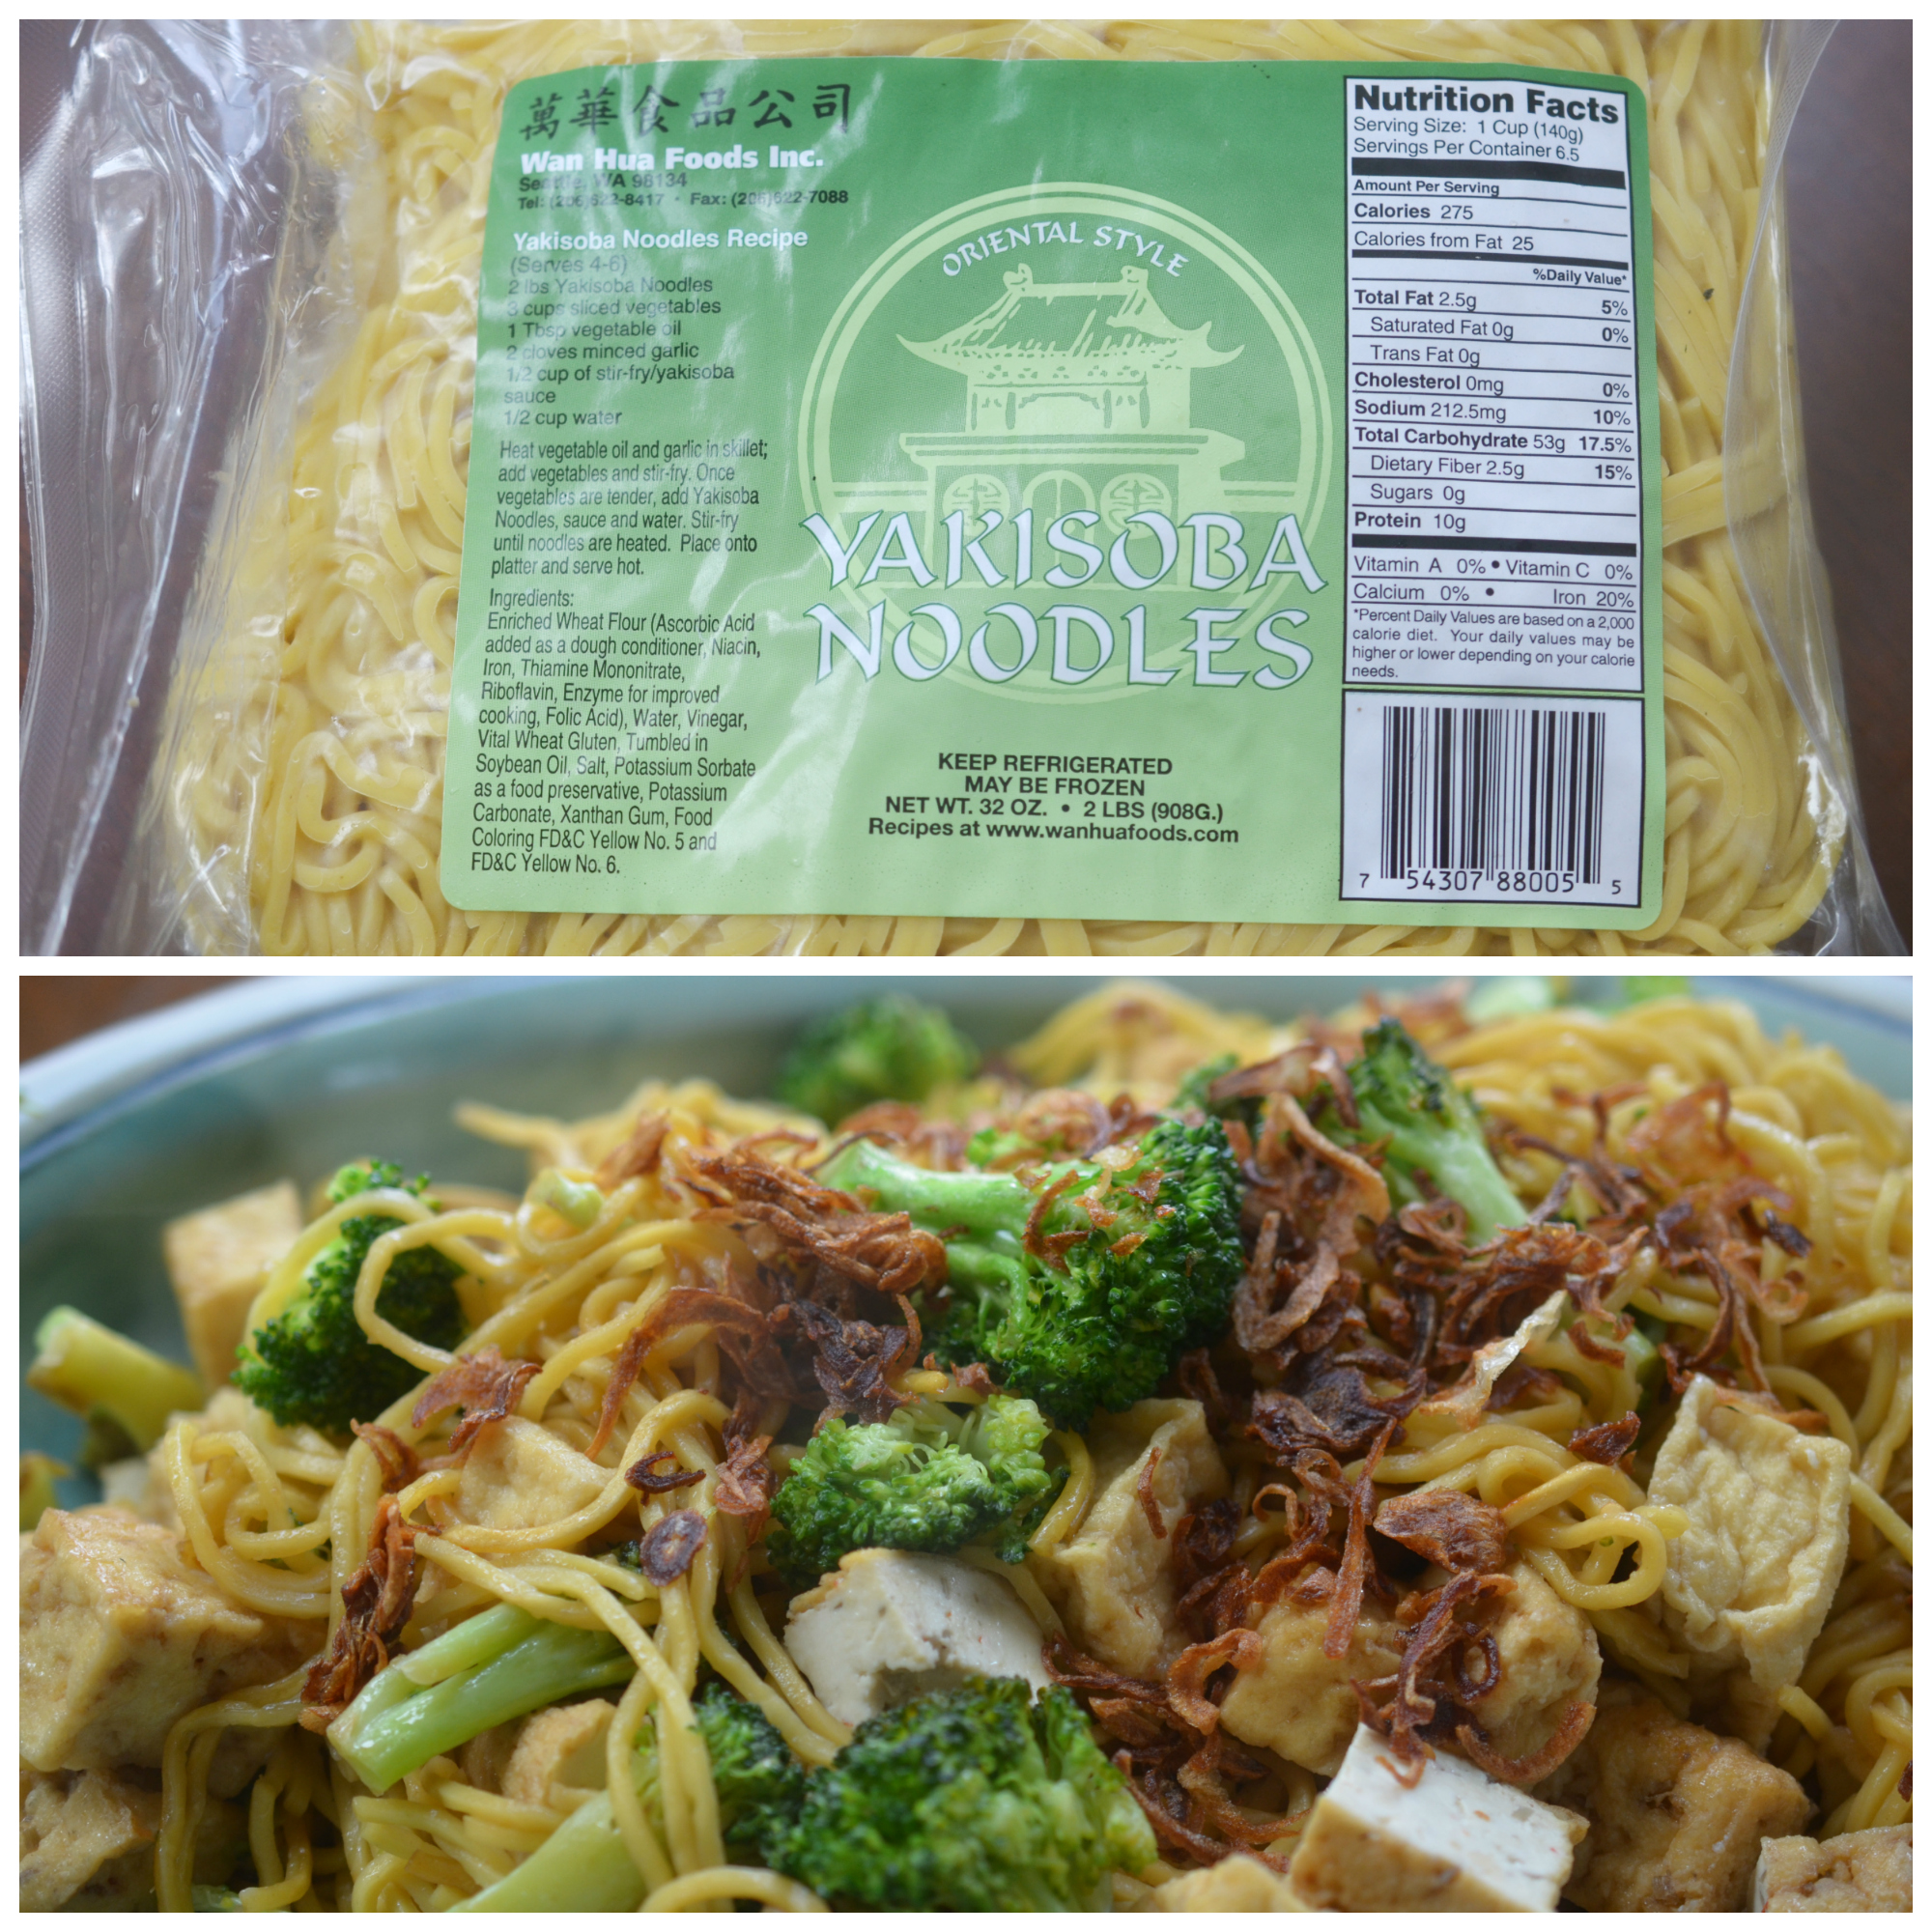 Pre-cooked yakisoba noodles - just add to your pan and toss!